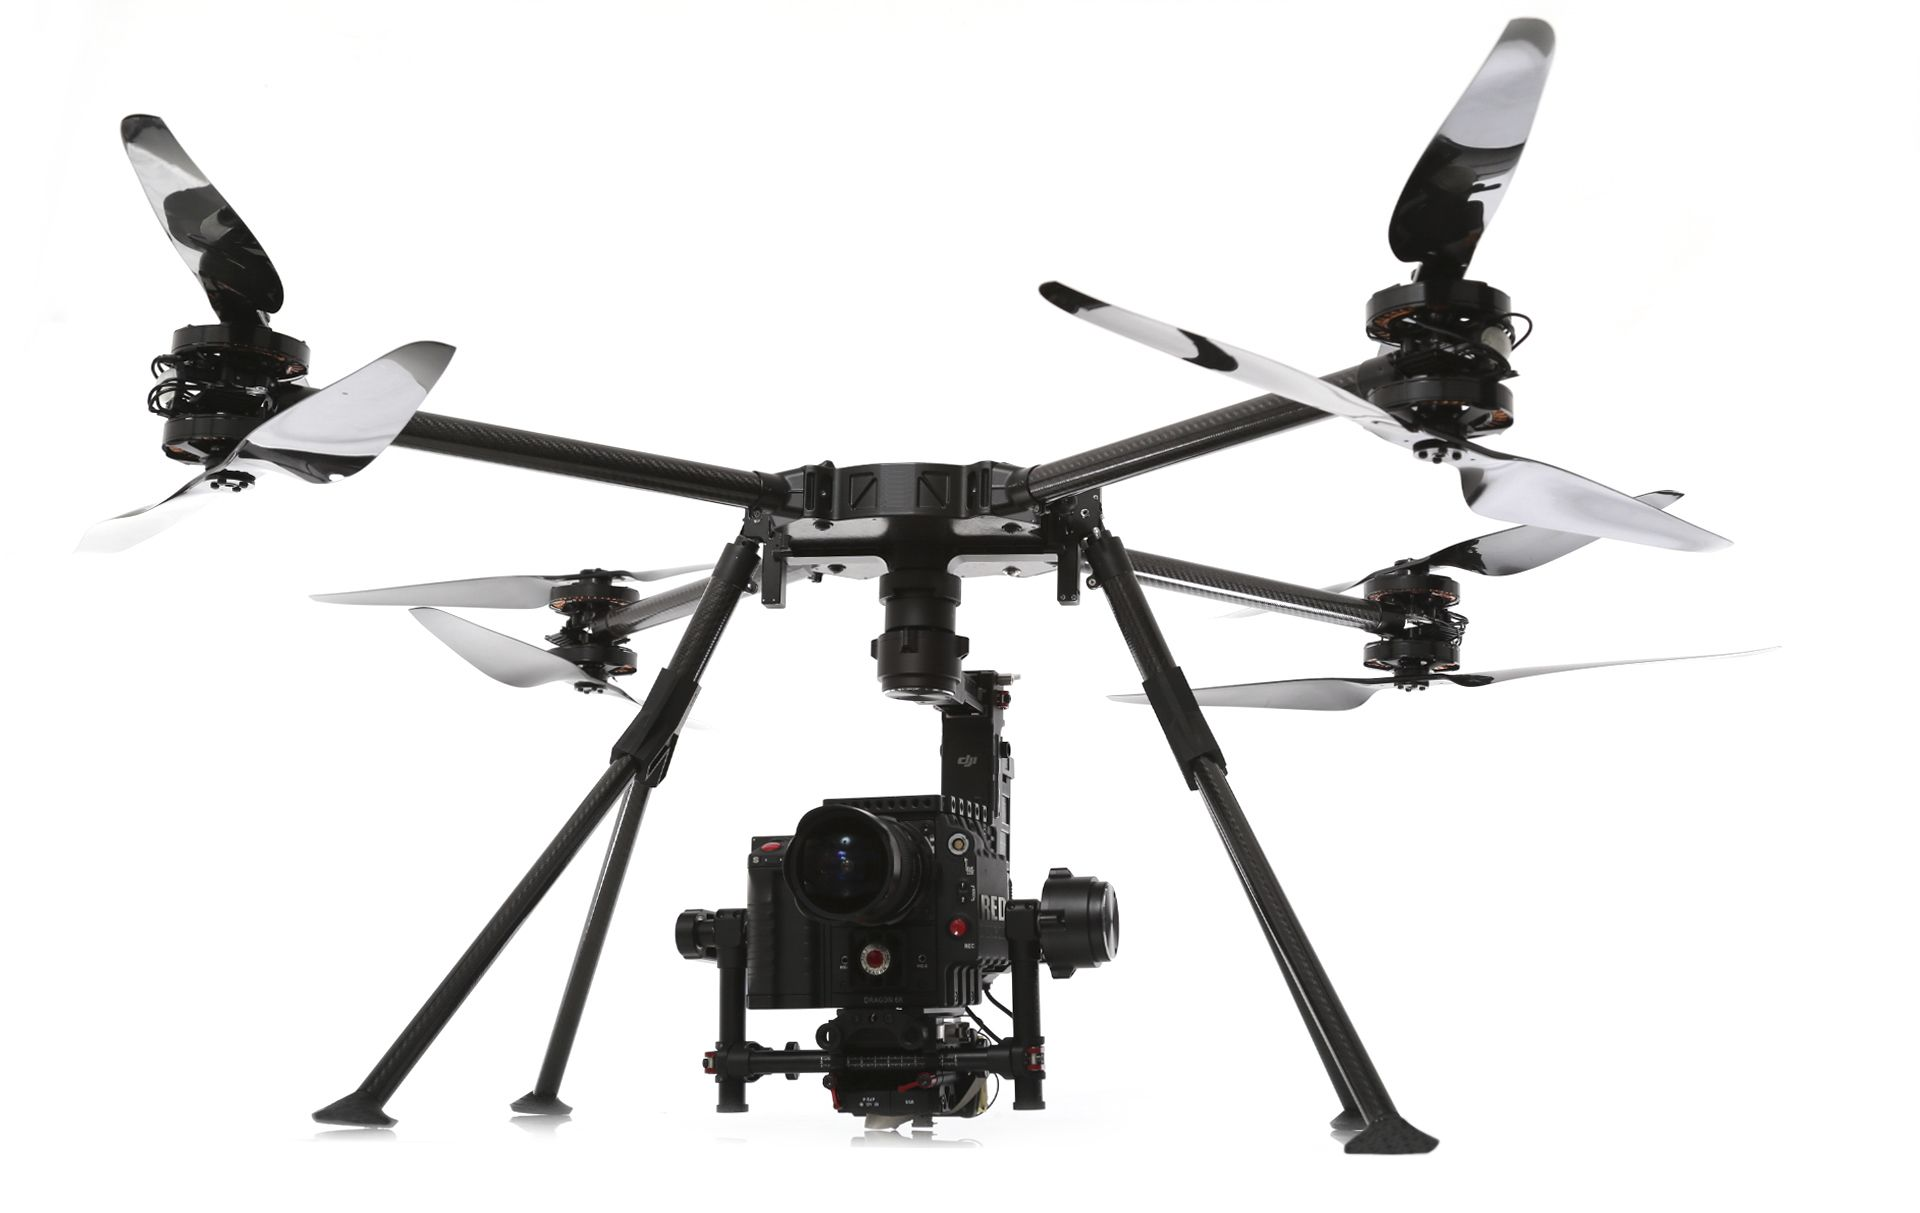 Tayzu Robotics Titan X8 Drone Kits All Products Drones